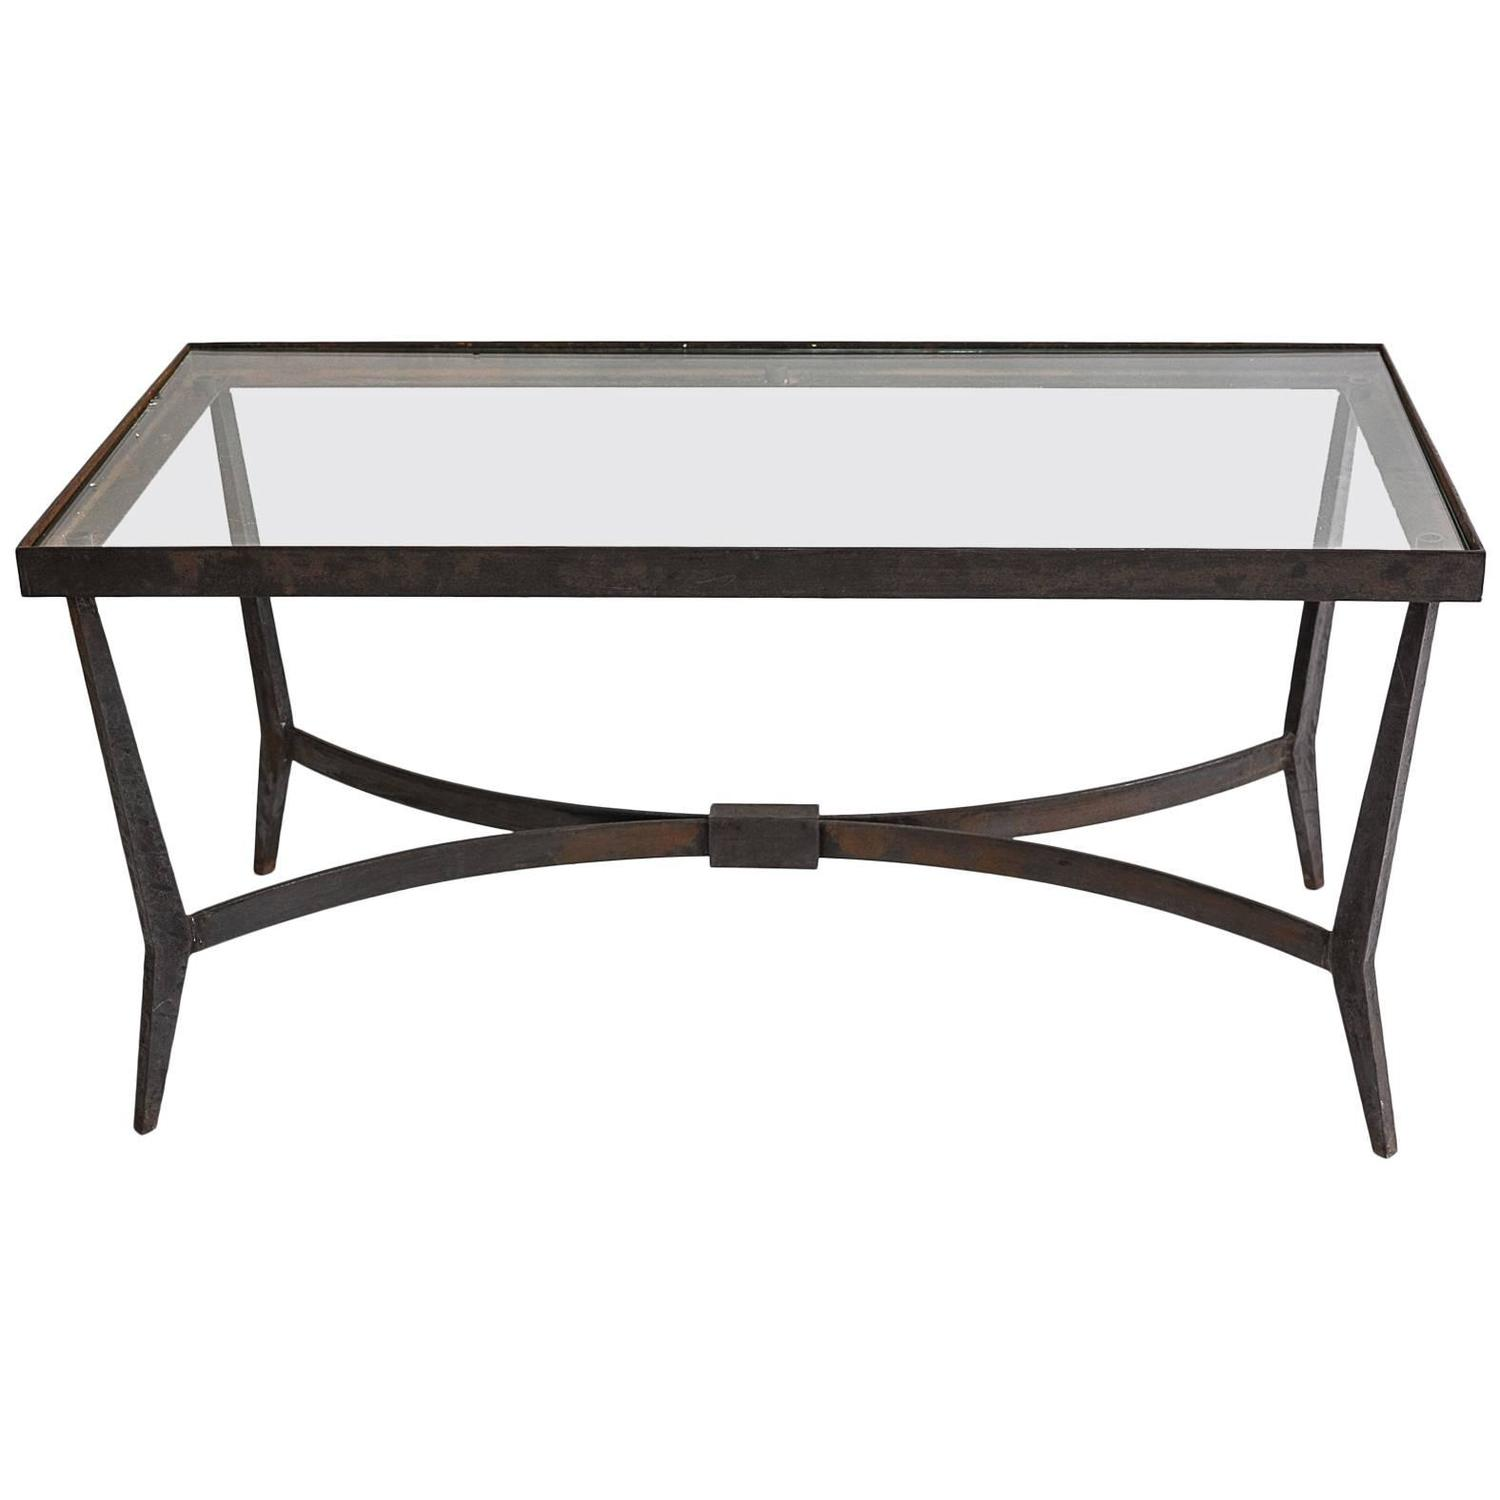 1950s wrought iron coffee table for sale at 1stdibs for Wrought iron coffee table for sale